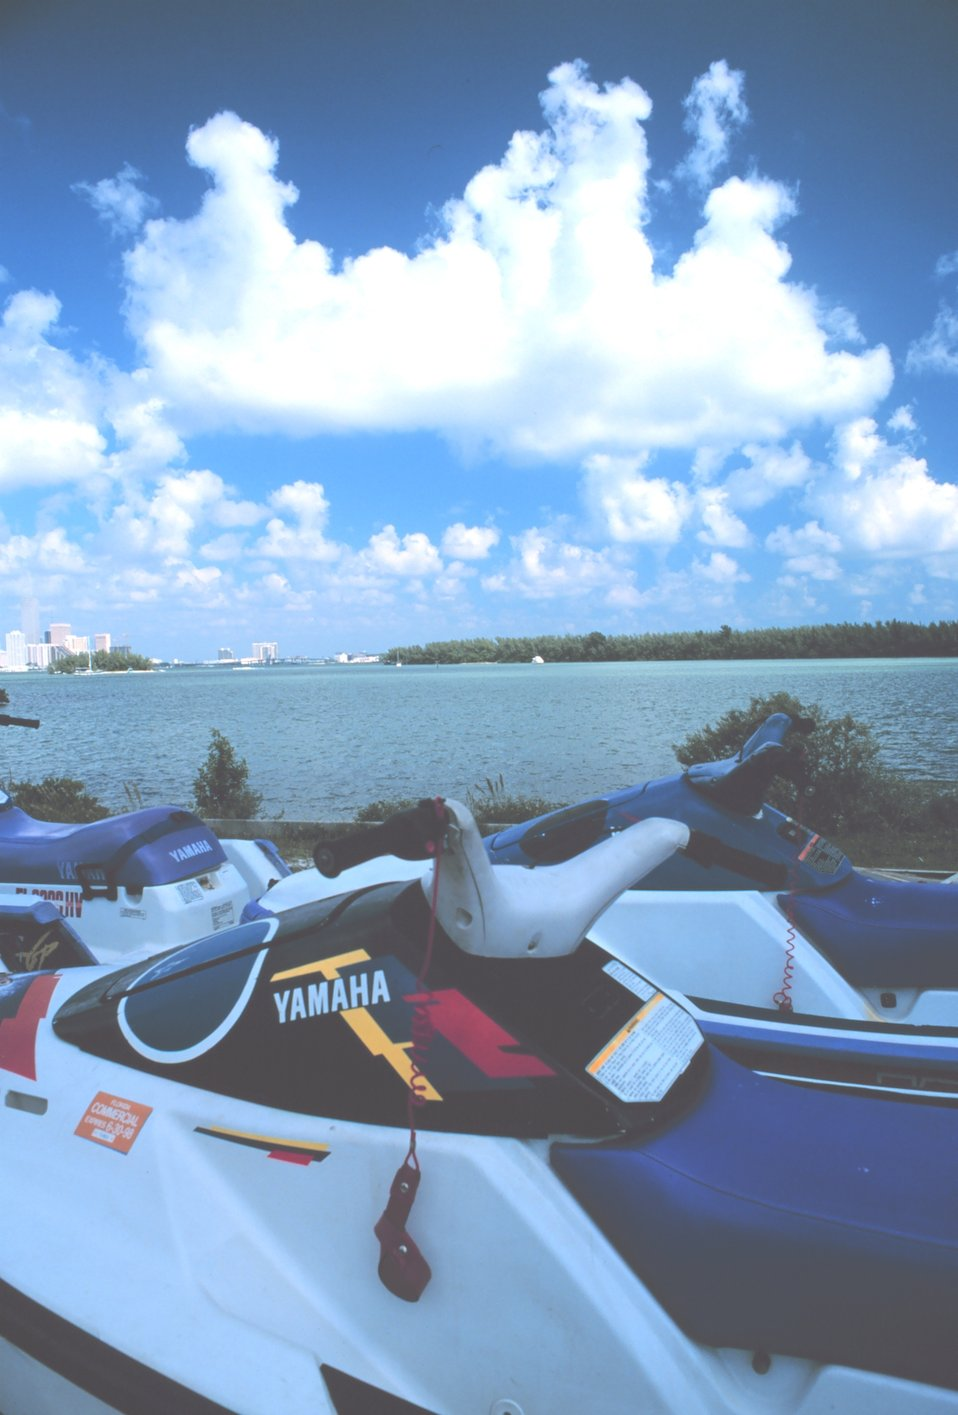 Ski Boats for rent on the shores of Key Biscayne